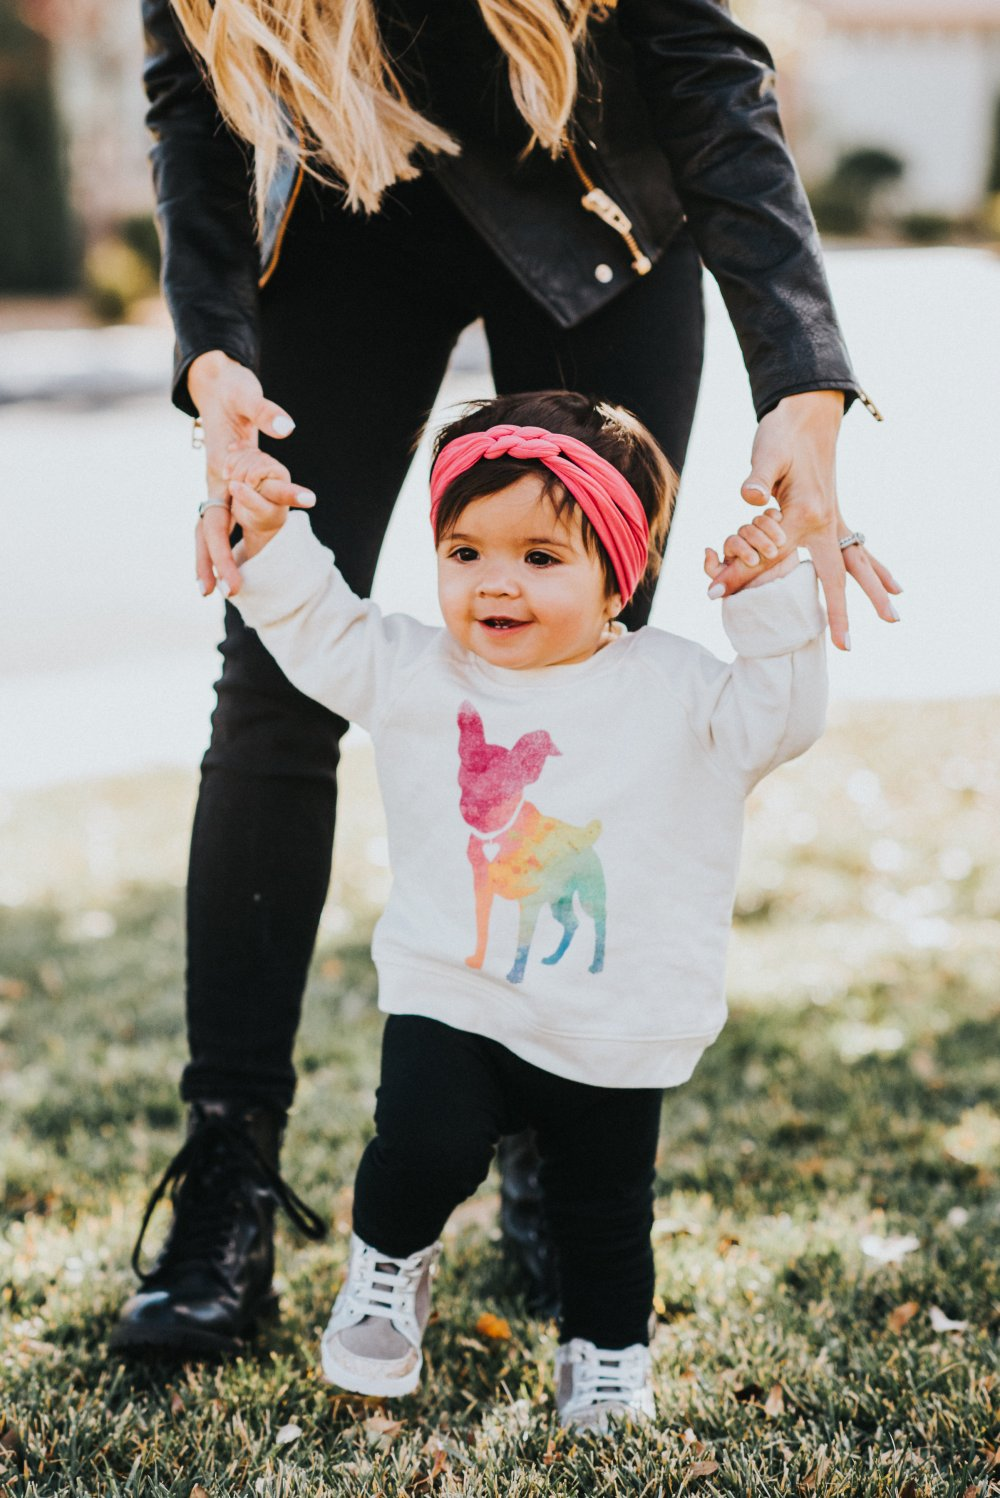 Nordstrom always pulls through for the kids wardrobes! I love their brand selections and honestly just how well all their clothes hold up! You are getting great quality kids clothing! #trulydestiny #kidsfashion #womensfashion #quality